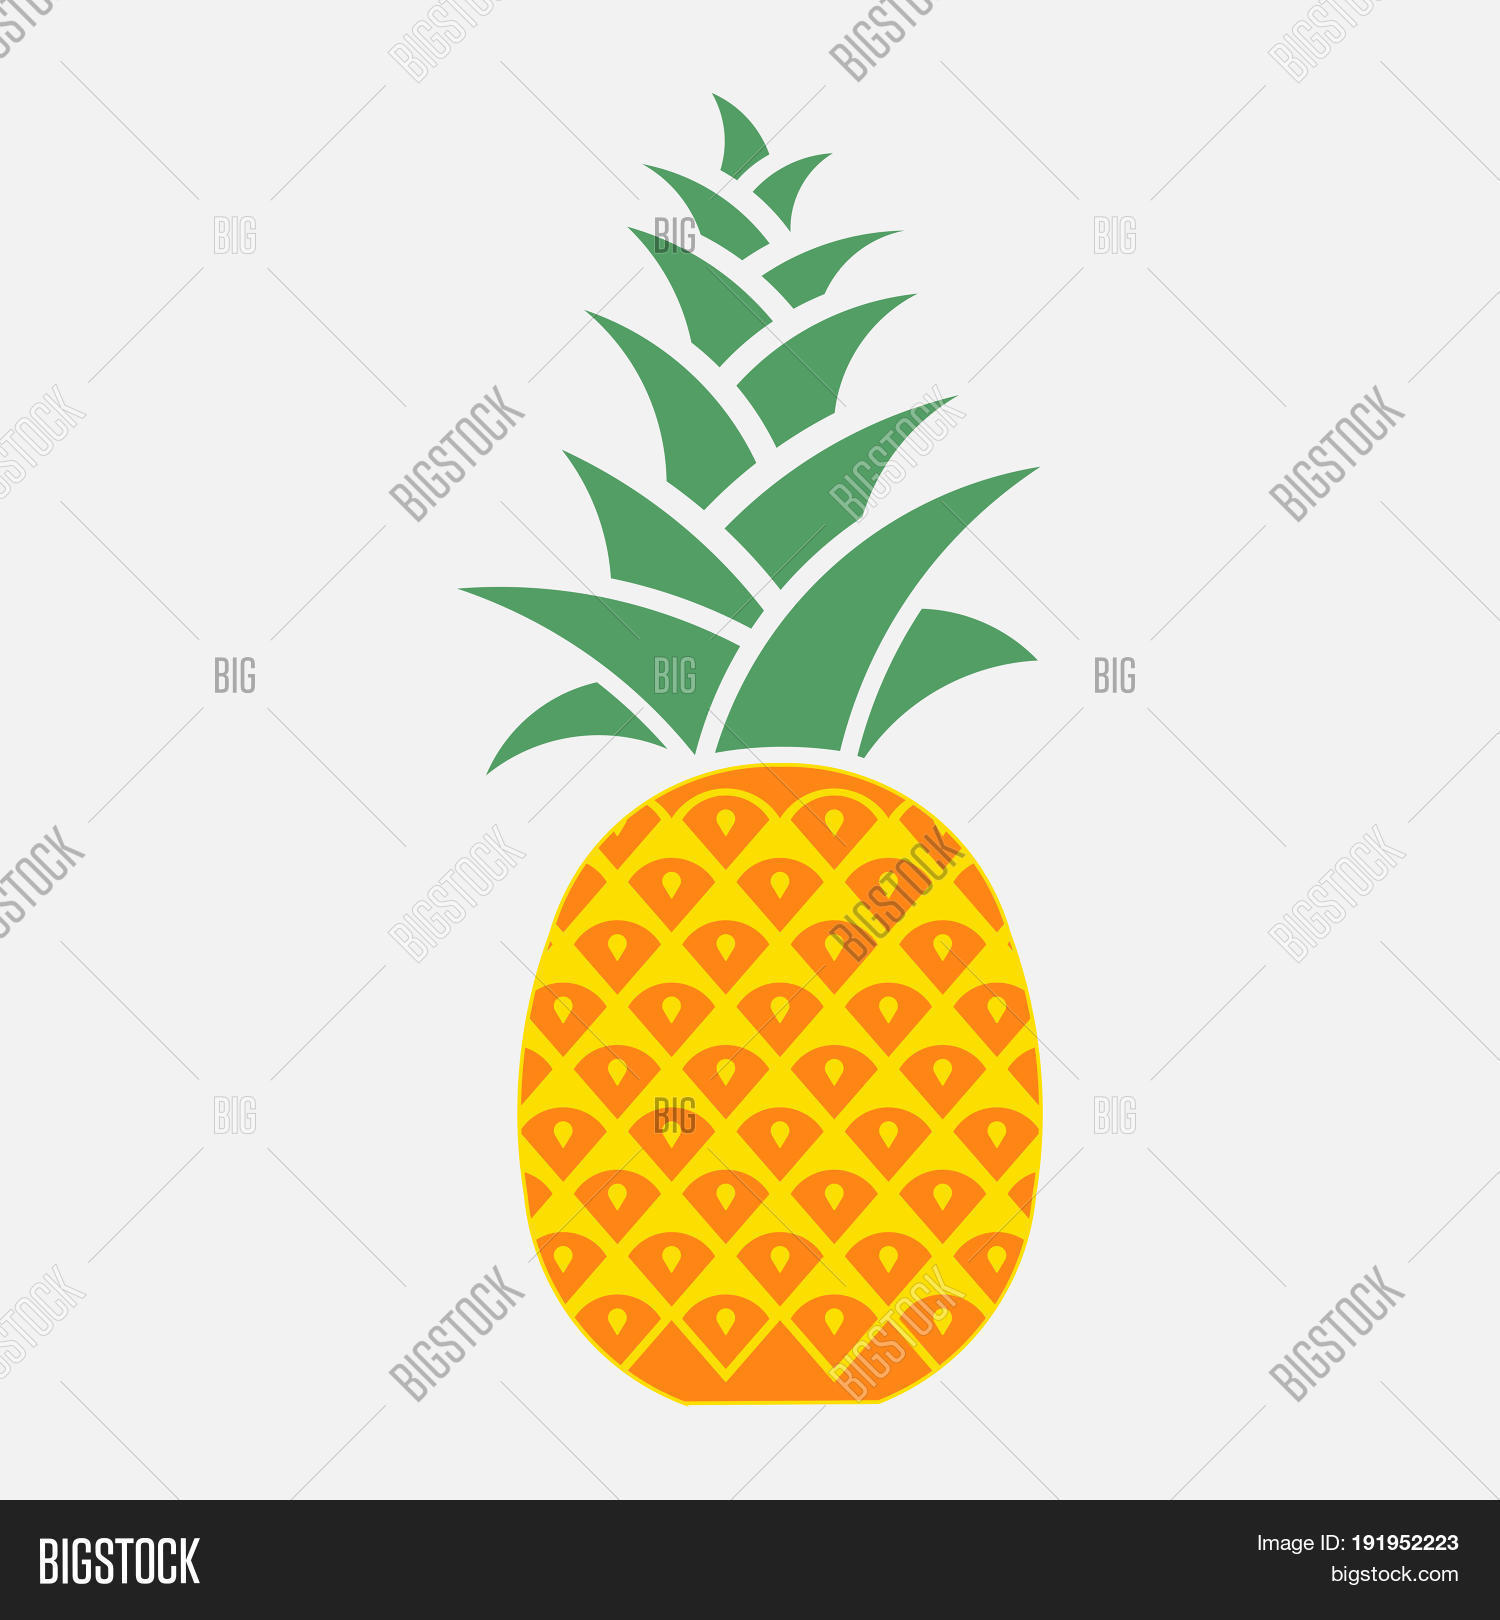 Icon Pineapple Symbol Image Photo Free Trial Bigstock